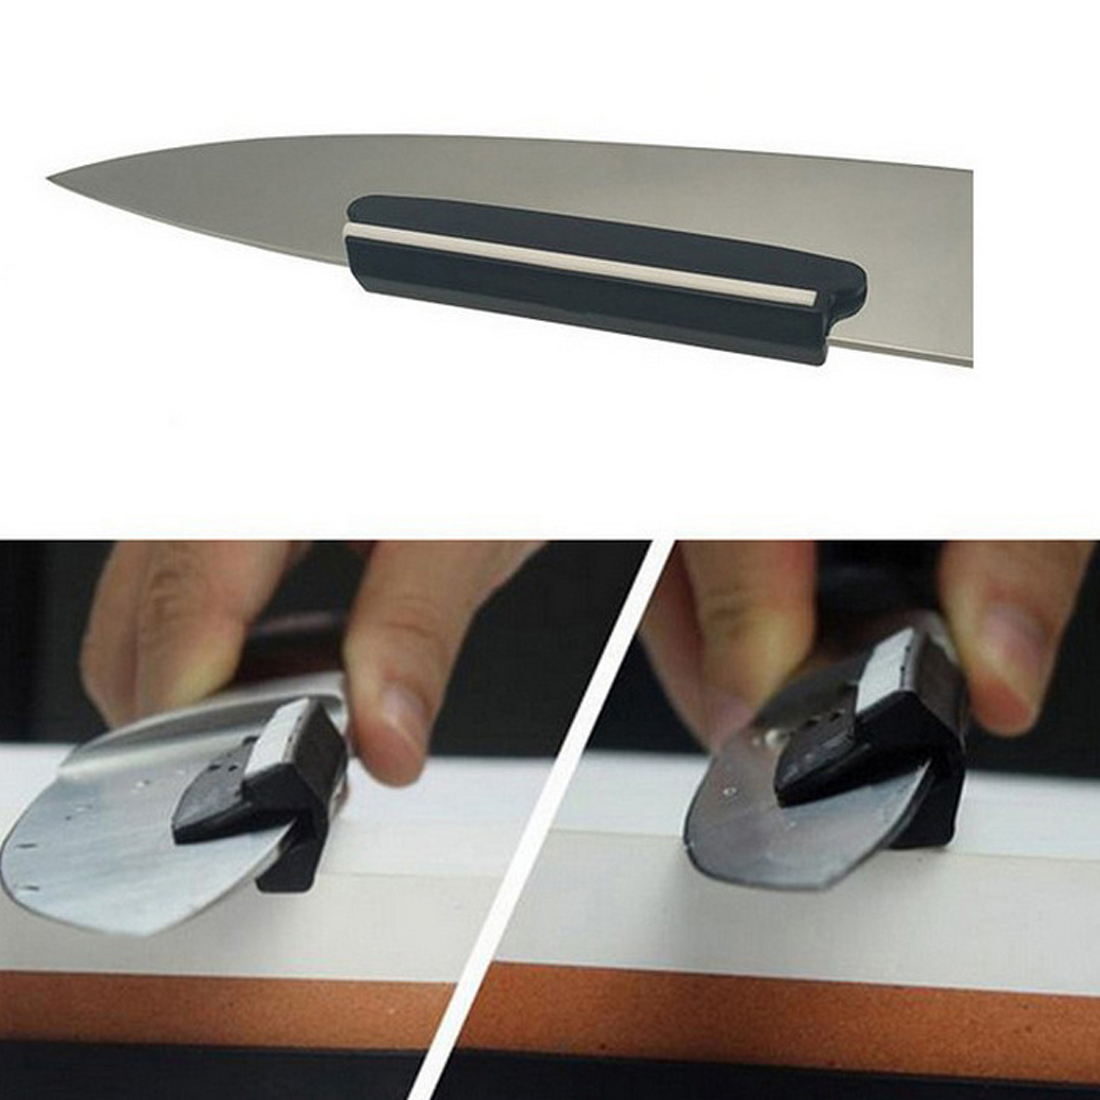 Hot Best Selling Knife Sharpener Angle Guide Whetstone For Sharpening Home Living Practical Accessories Tools